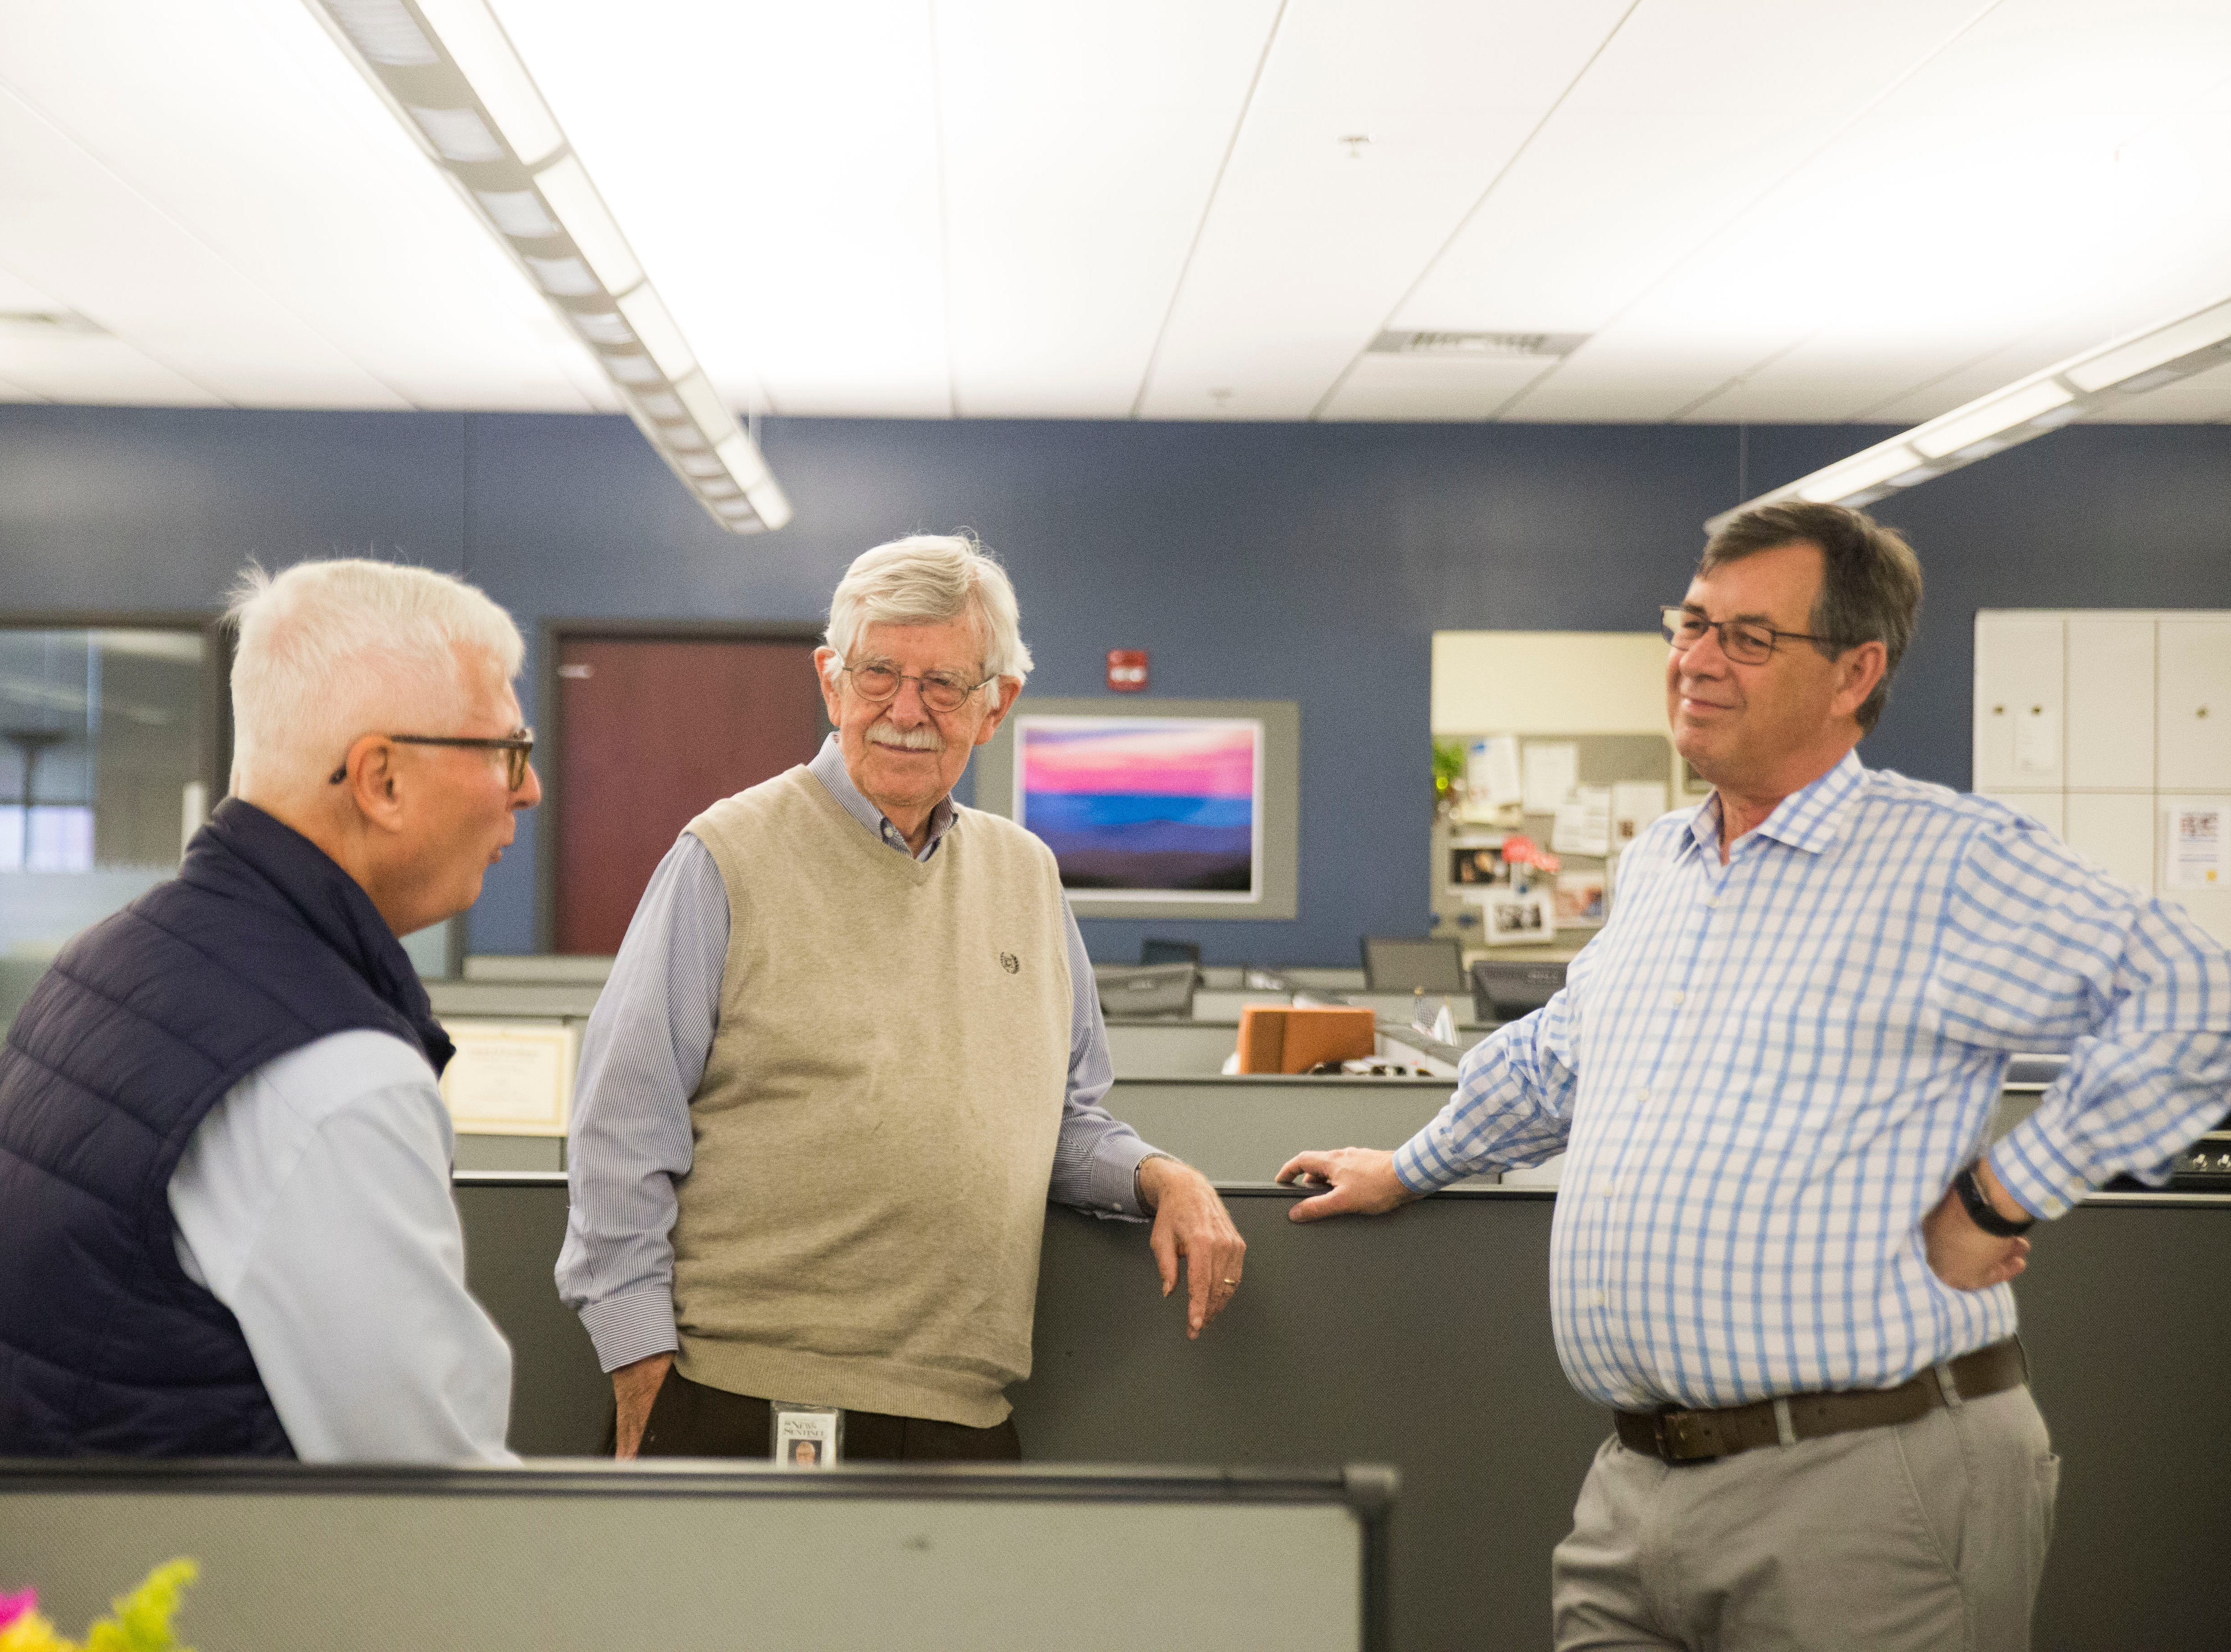 At right Jack Lail speaks with former colleague Frank Munger and current colleague Charlie Daniel as the newsroom celebrates the retirements of himself as well as Mary Constantine, Jack Lail and Michael Patrick on Wednesday, January 2, 2019.